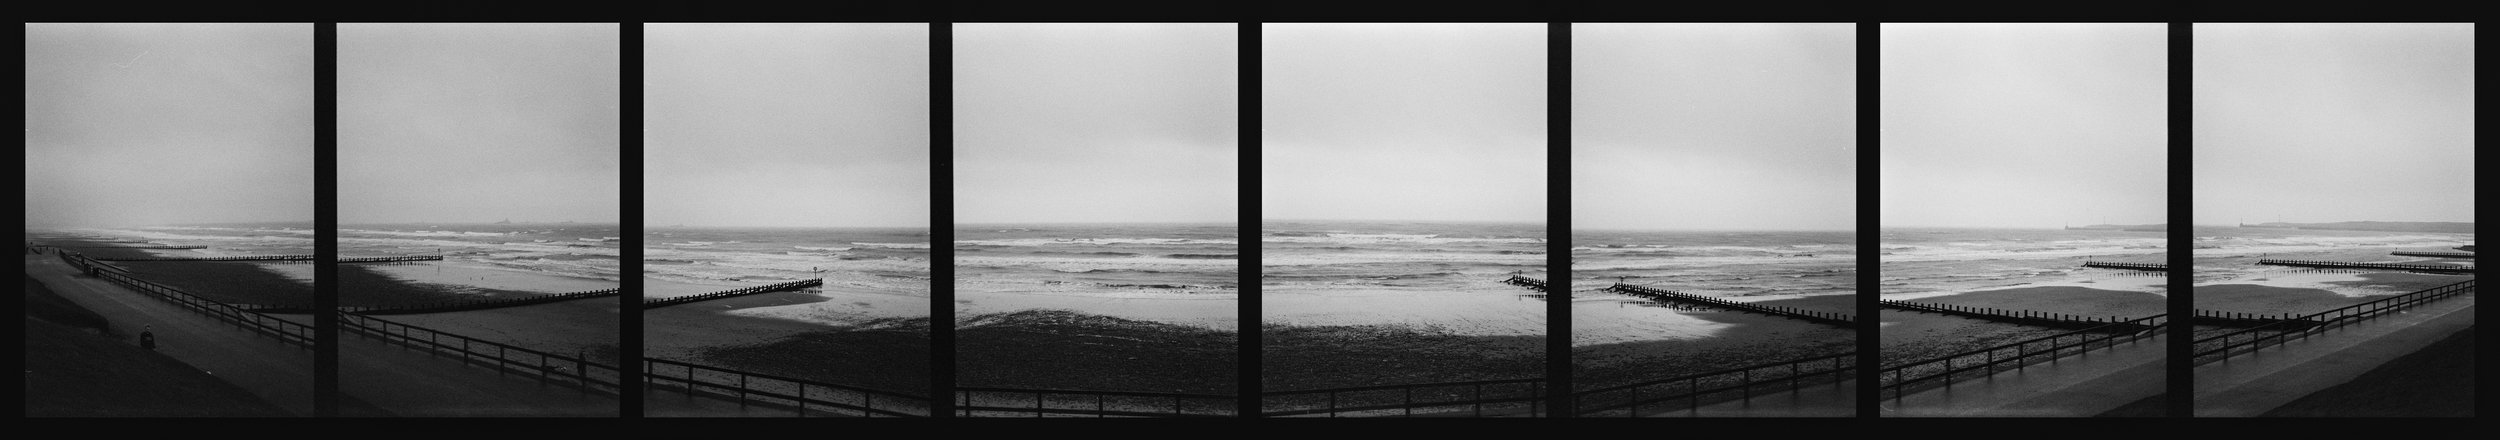 Aberdeen Beach Panorama, shot on Canon Multi Tele